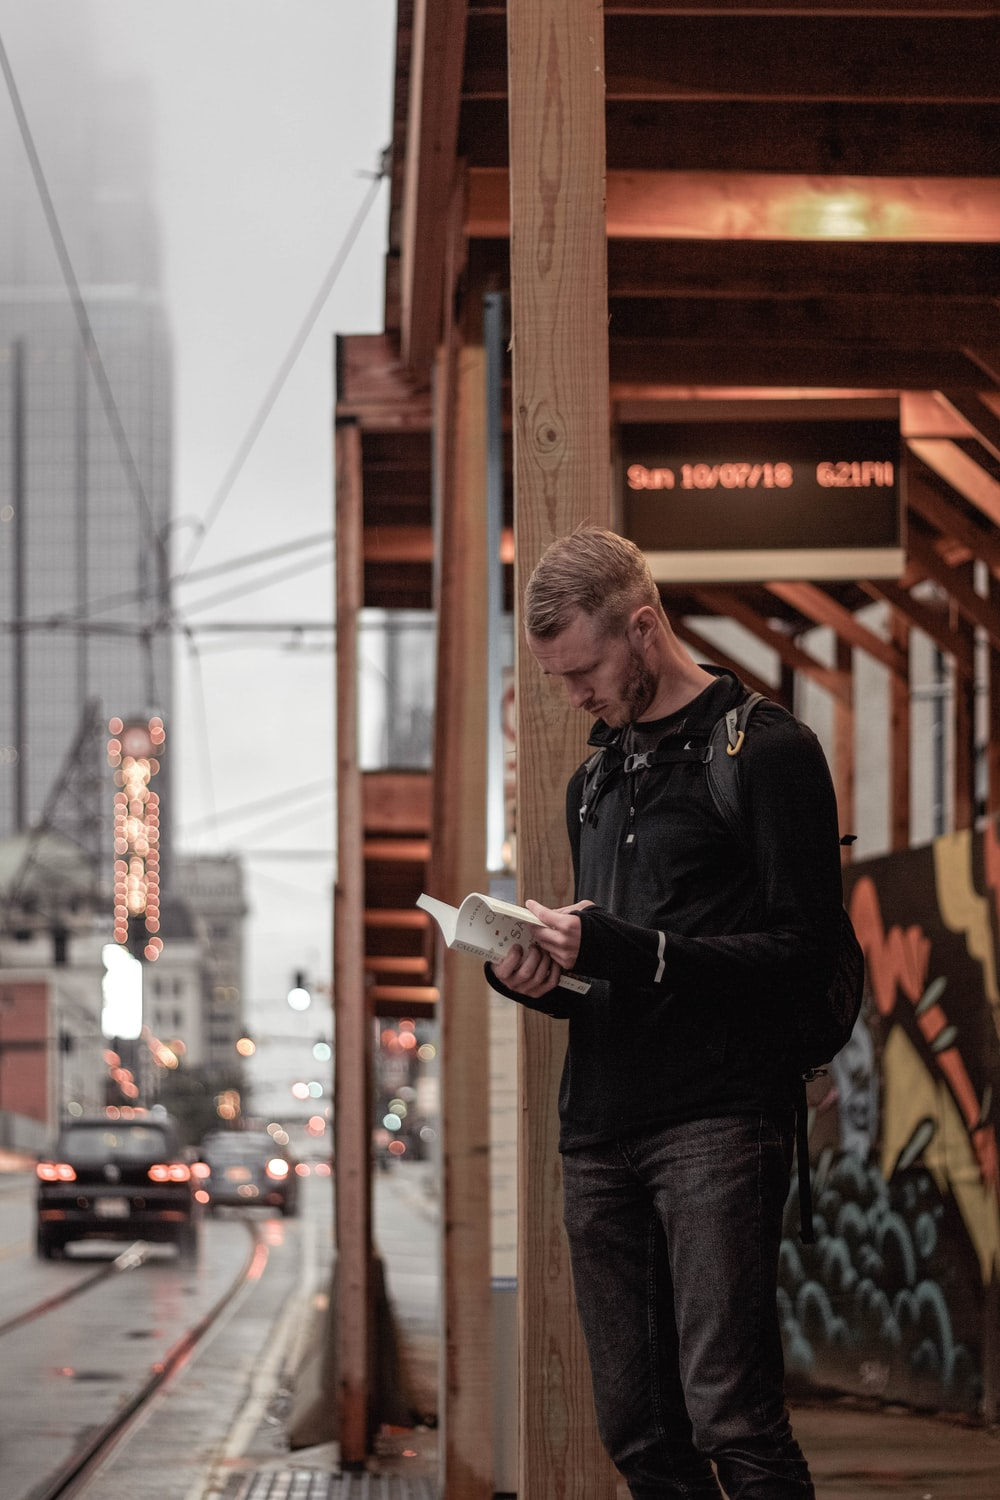 man in black sweater stands on sidewalk with book in hand